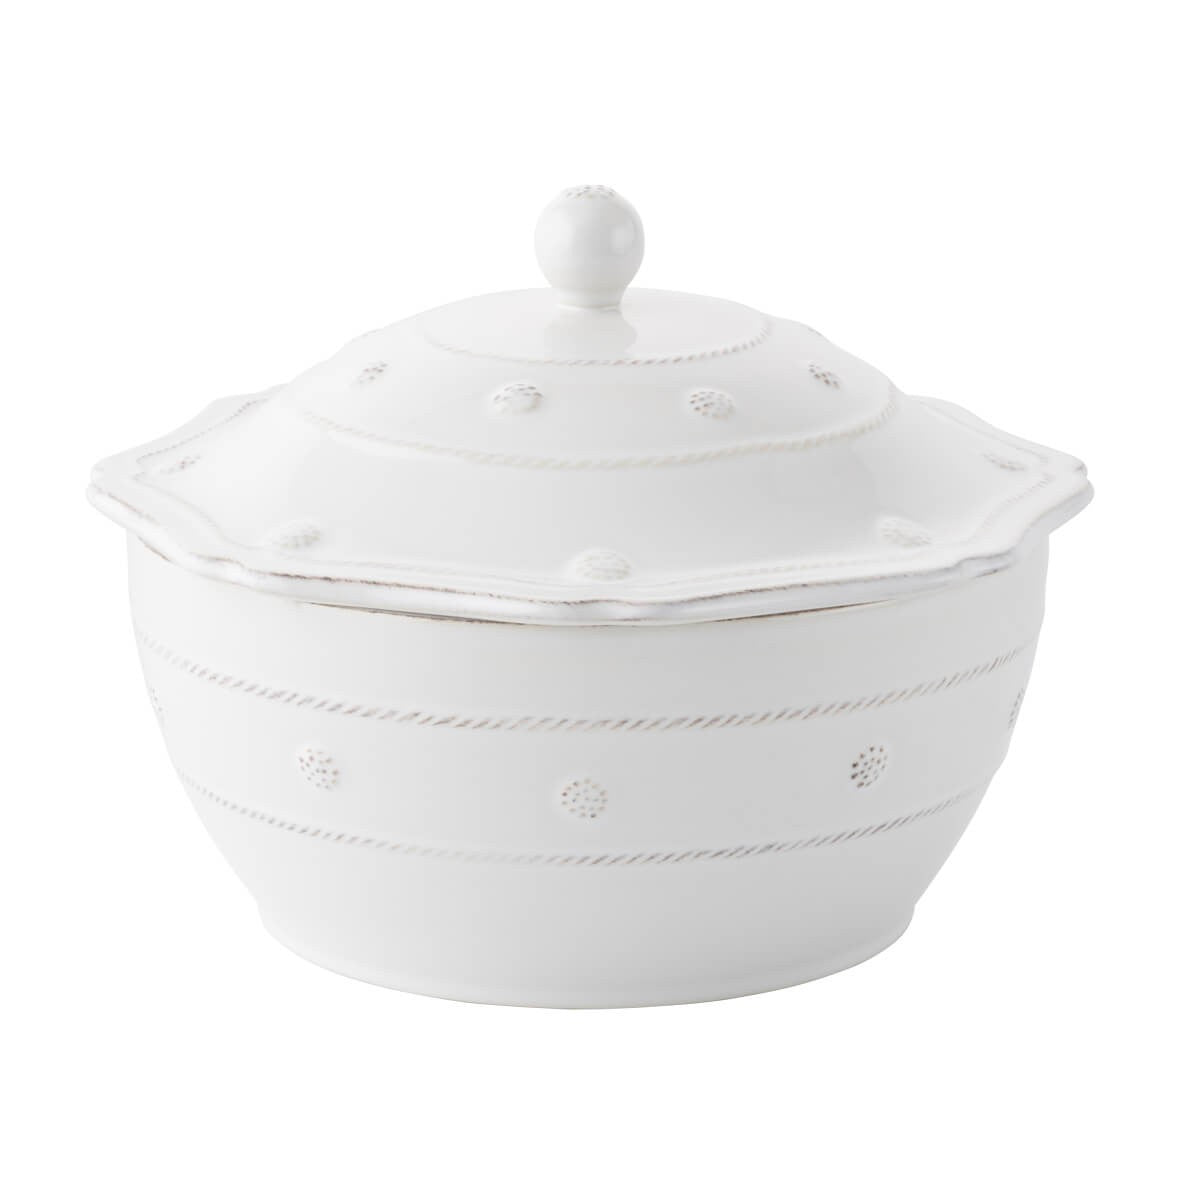 "Juliska - Berry & Thread Whitewash 9.5"" Covered Casserole"